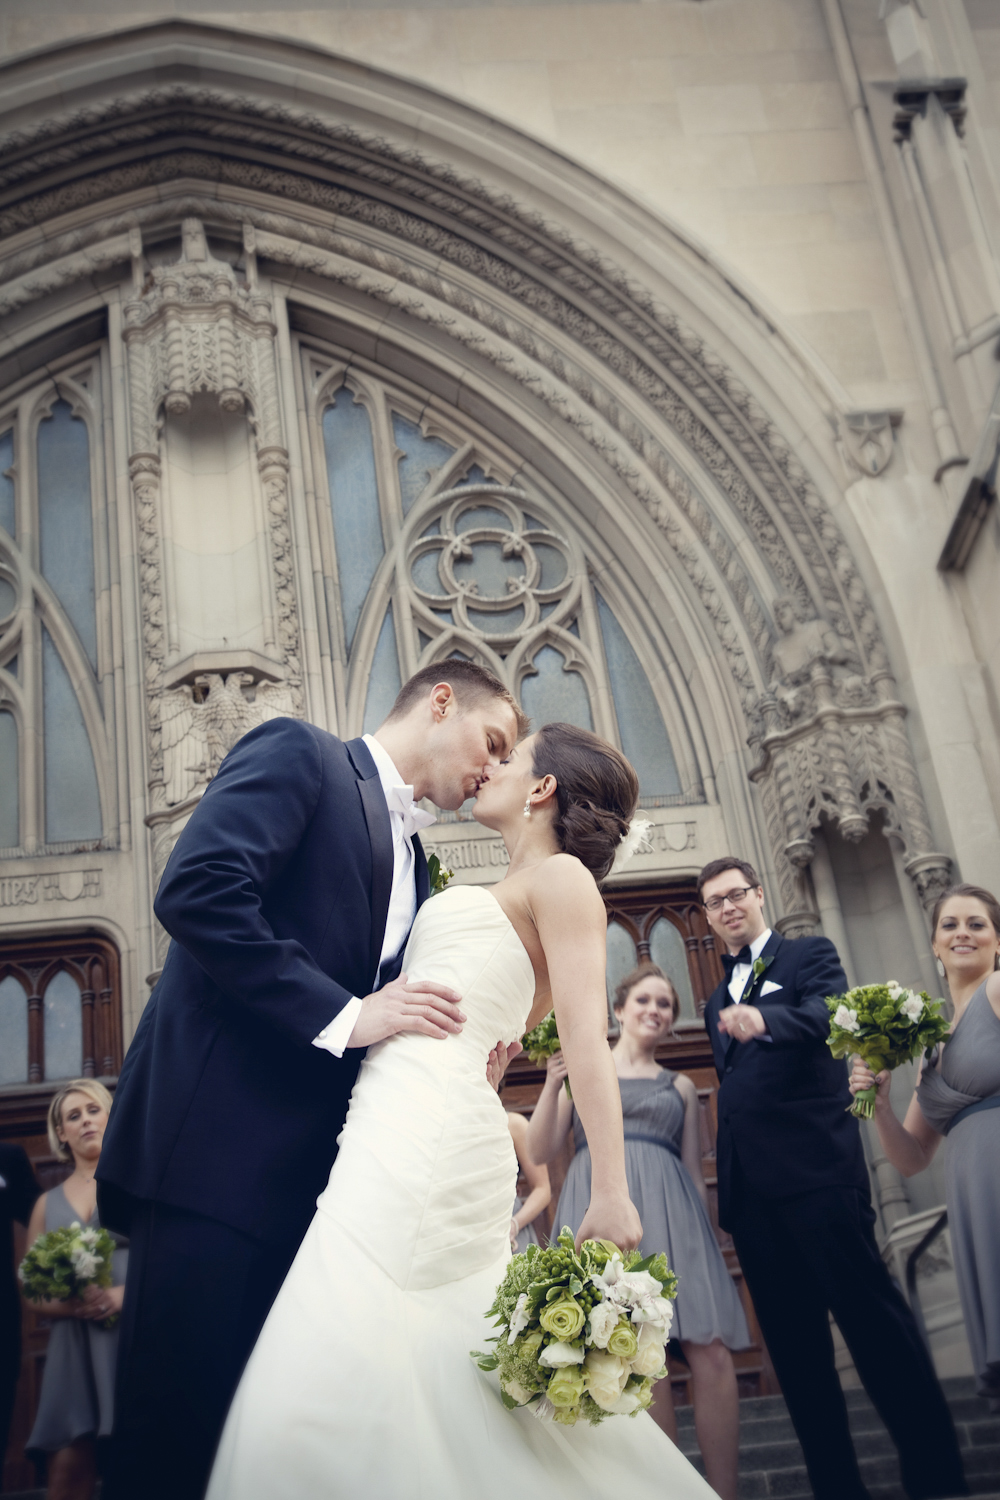 Indianapolis-Indiana-Wedding-Photographer-Crowes-Eye-Photography-Scottish-Rite-Catherdral.jpg